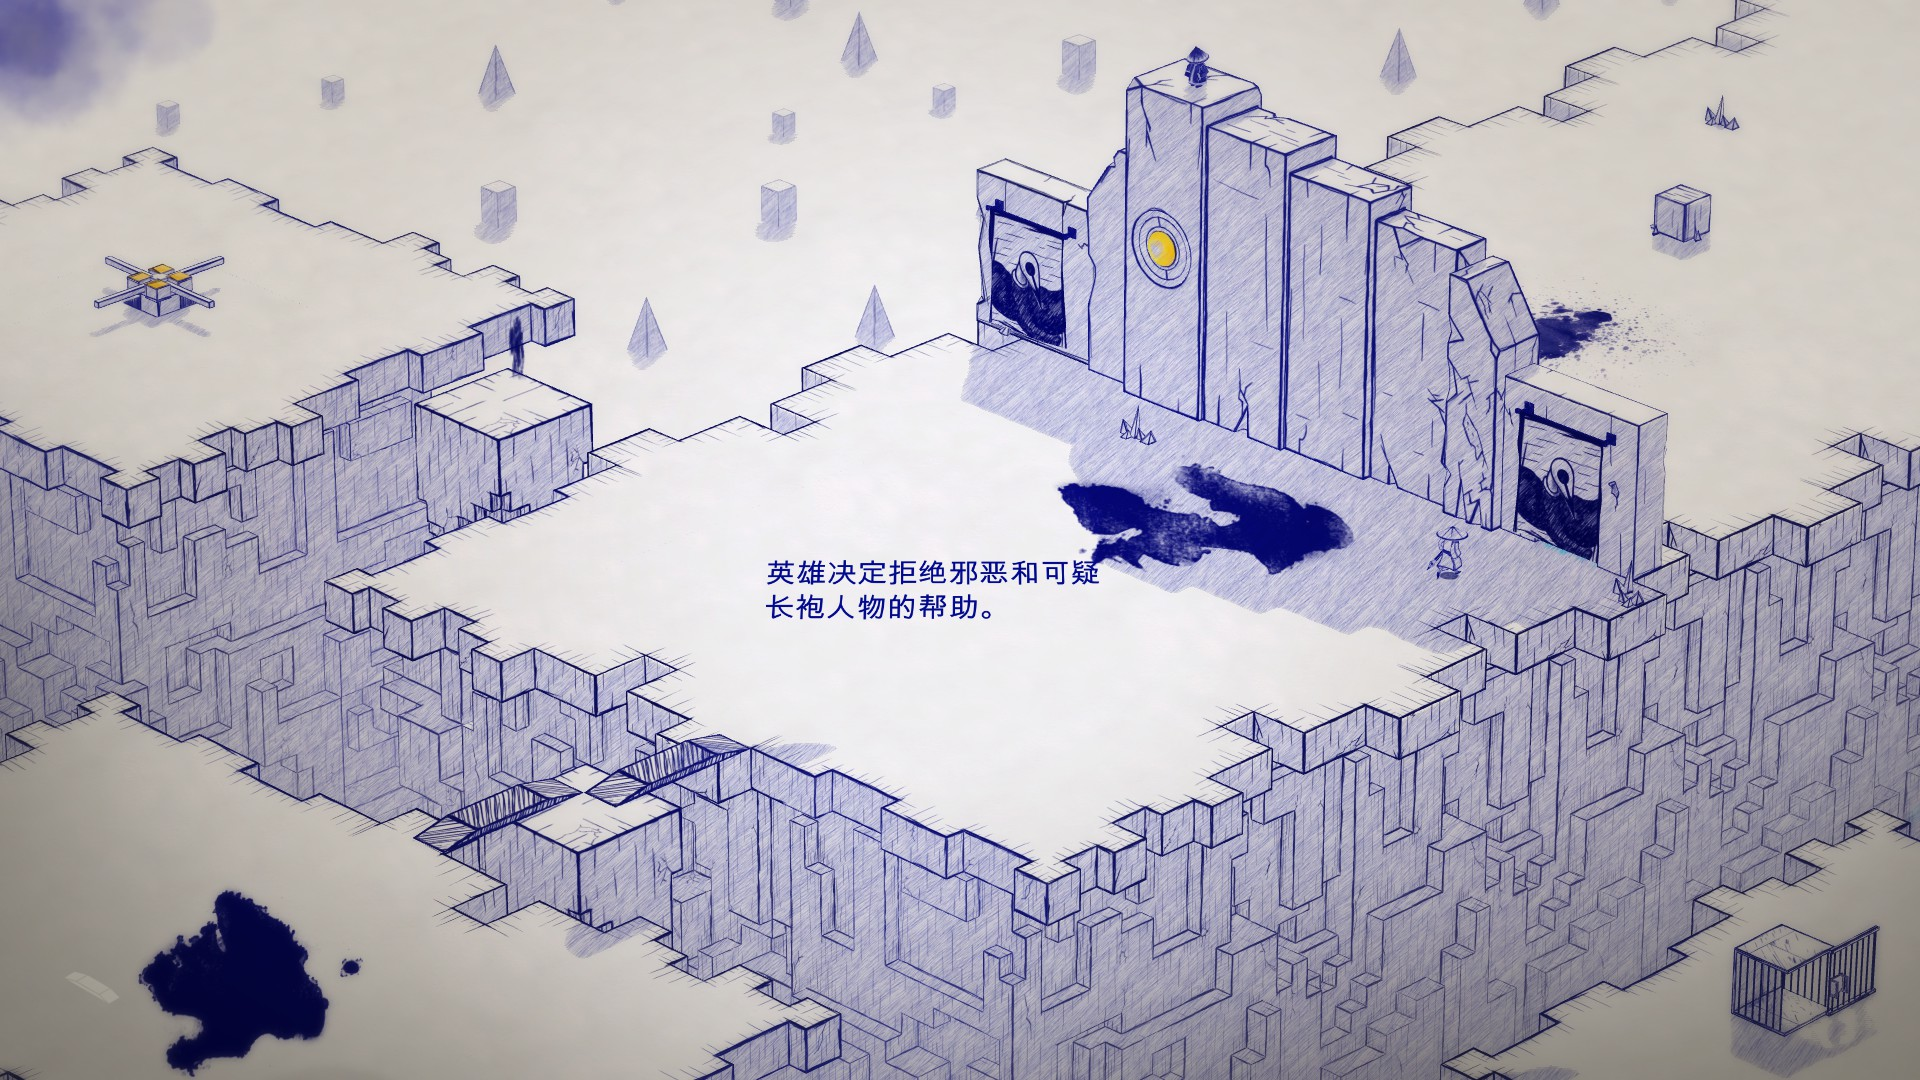 Inked: A Tale of Love - All Achievements Complete - Walkthrough Guide - 收集类 / Bird Collection - B23AEA6